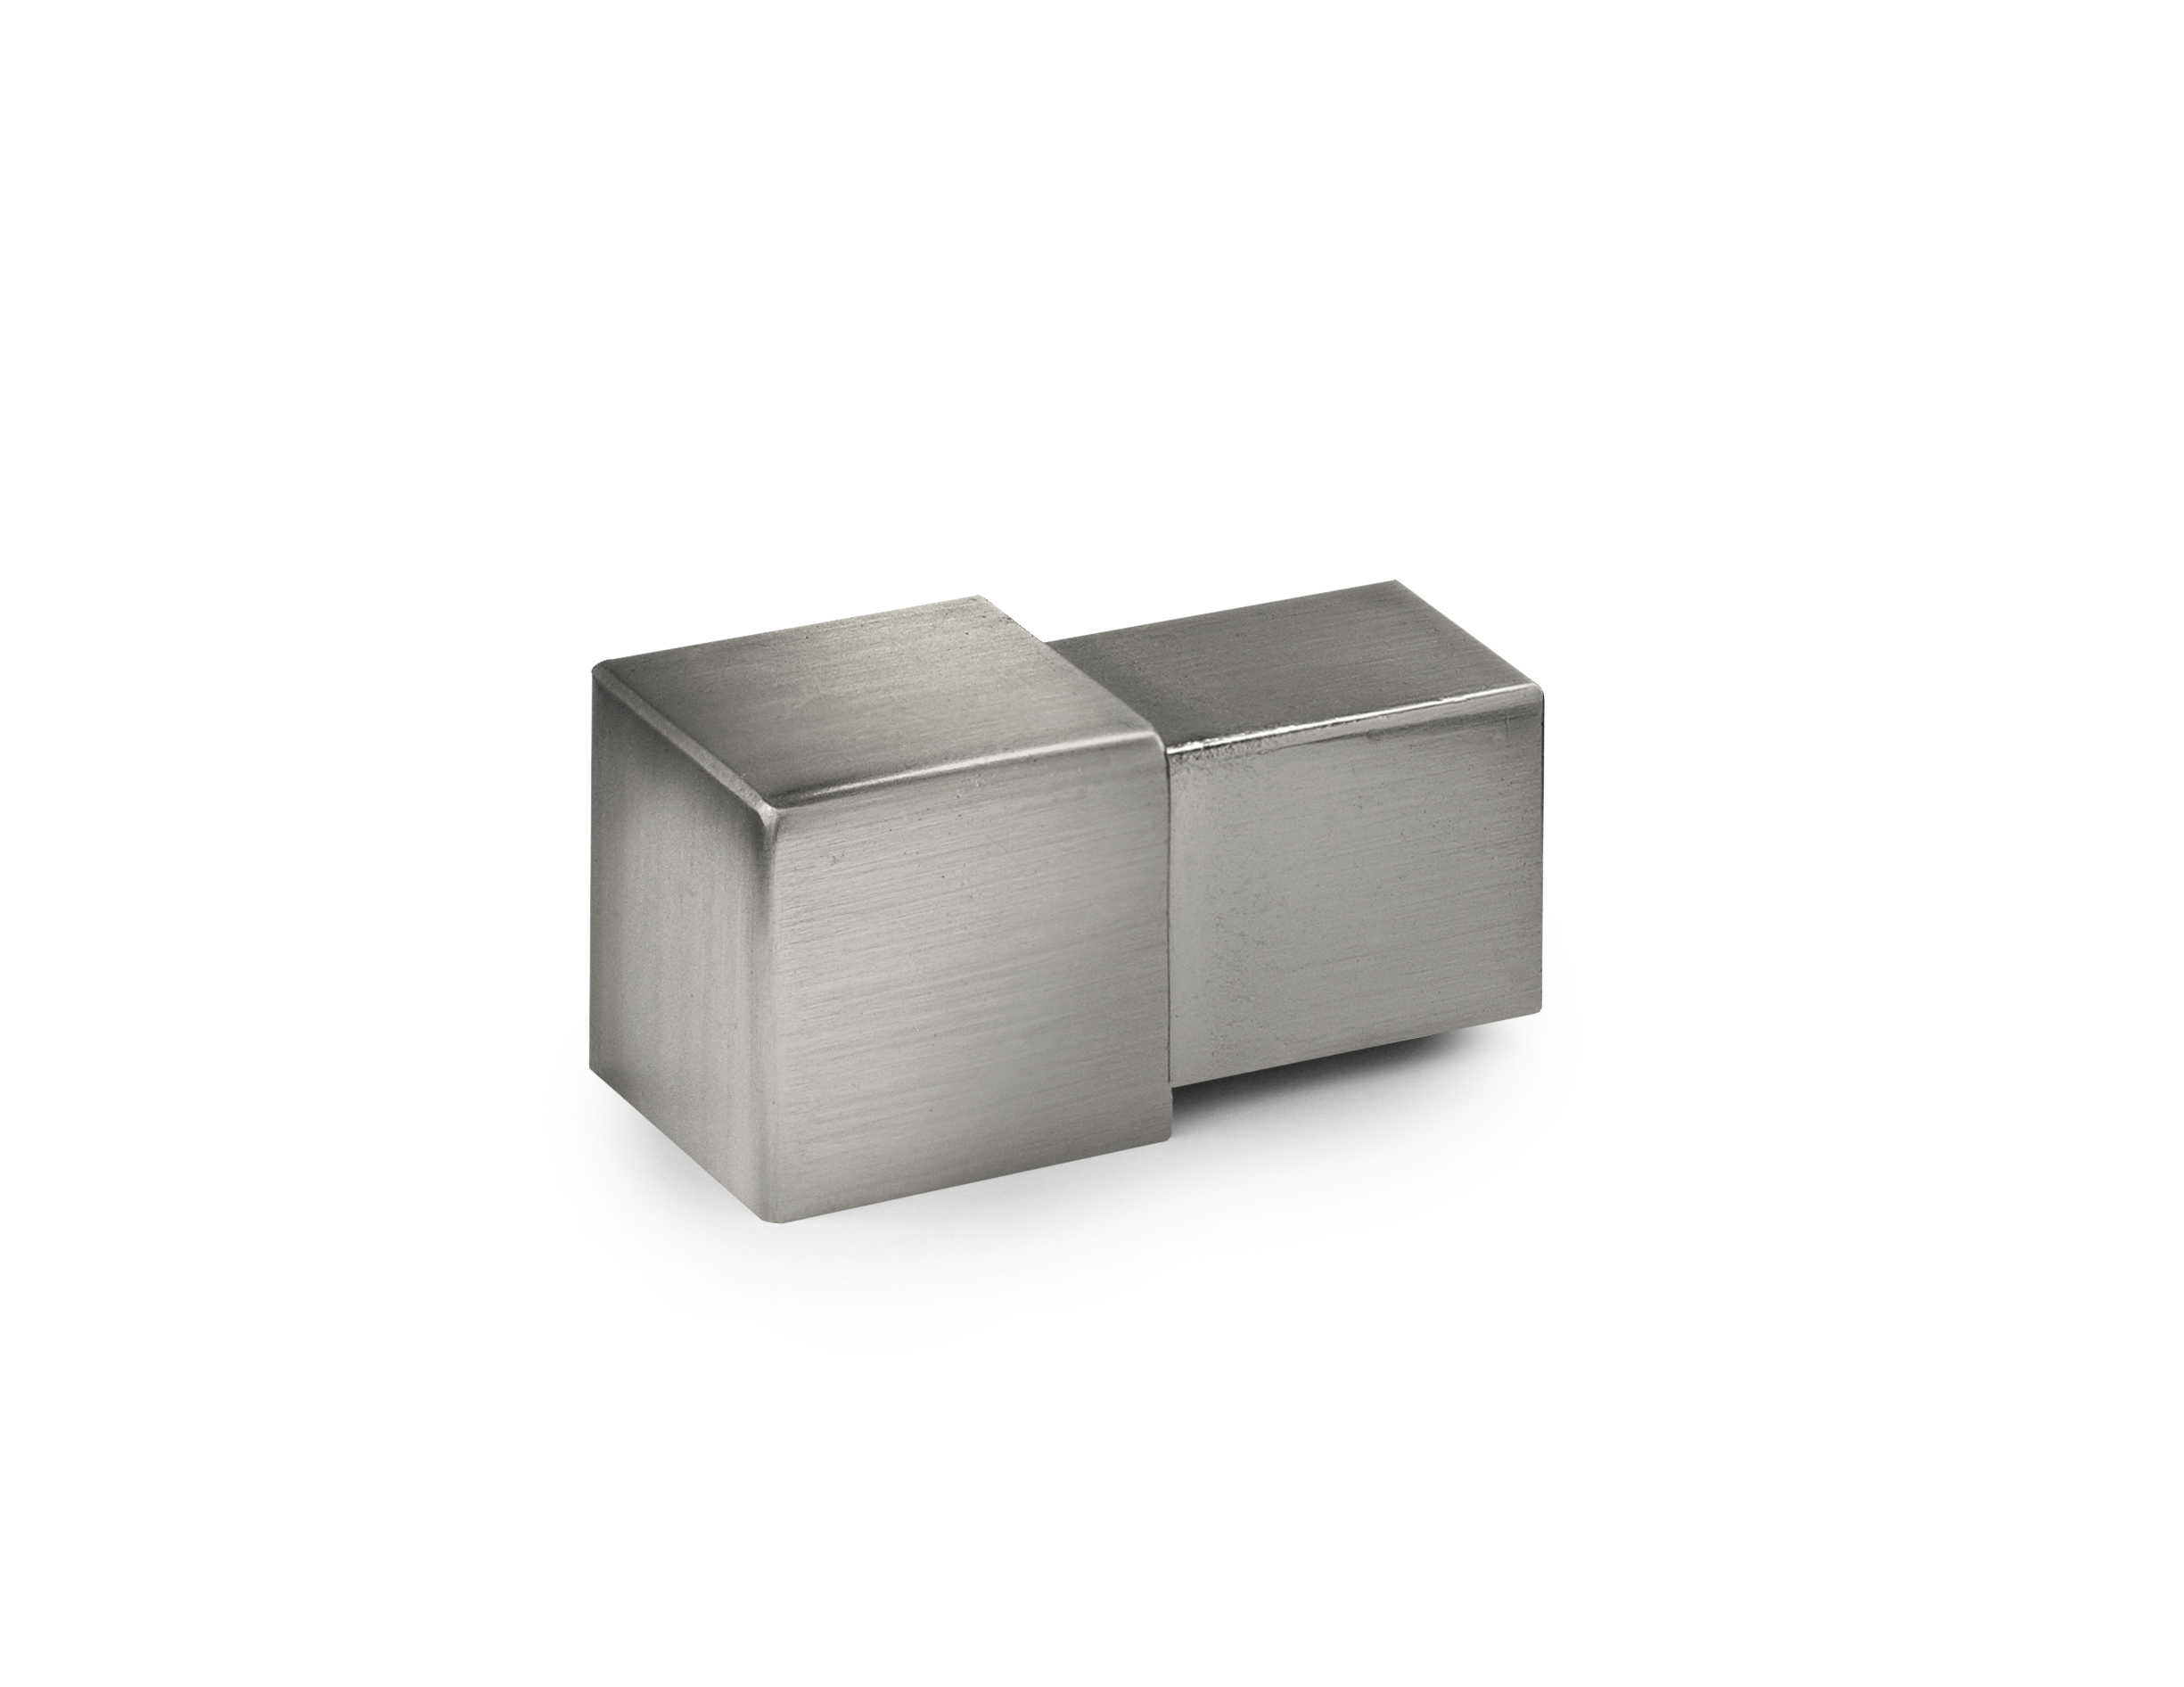 9mm Stainless Steel Square Edge Corner 2pk